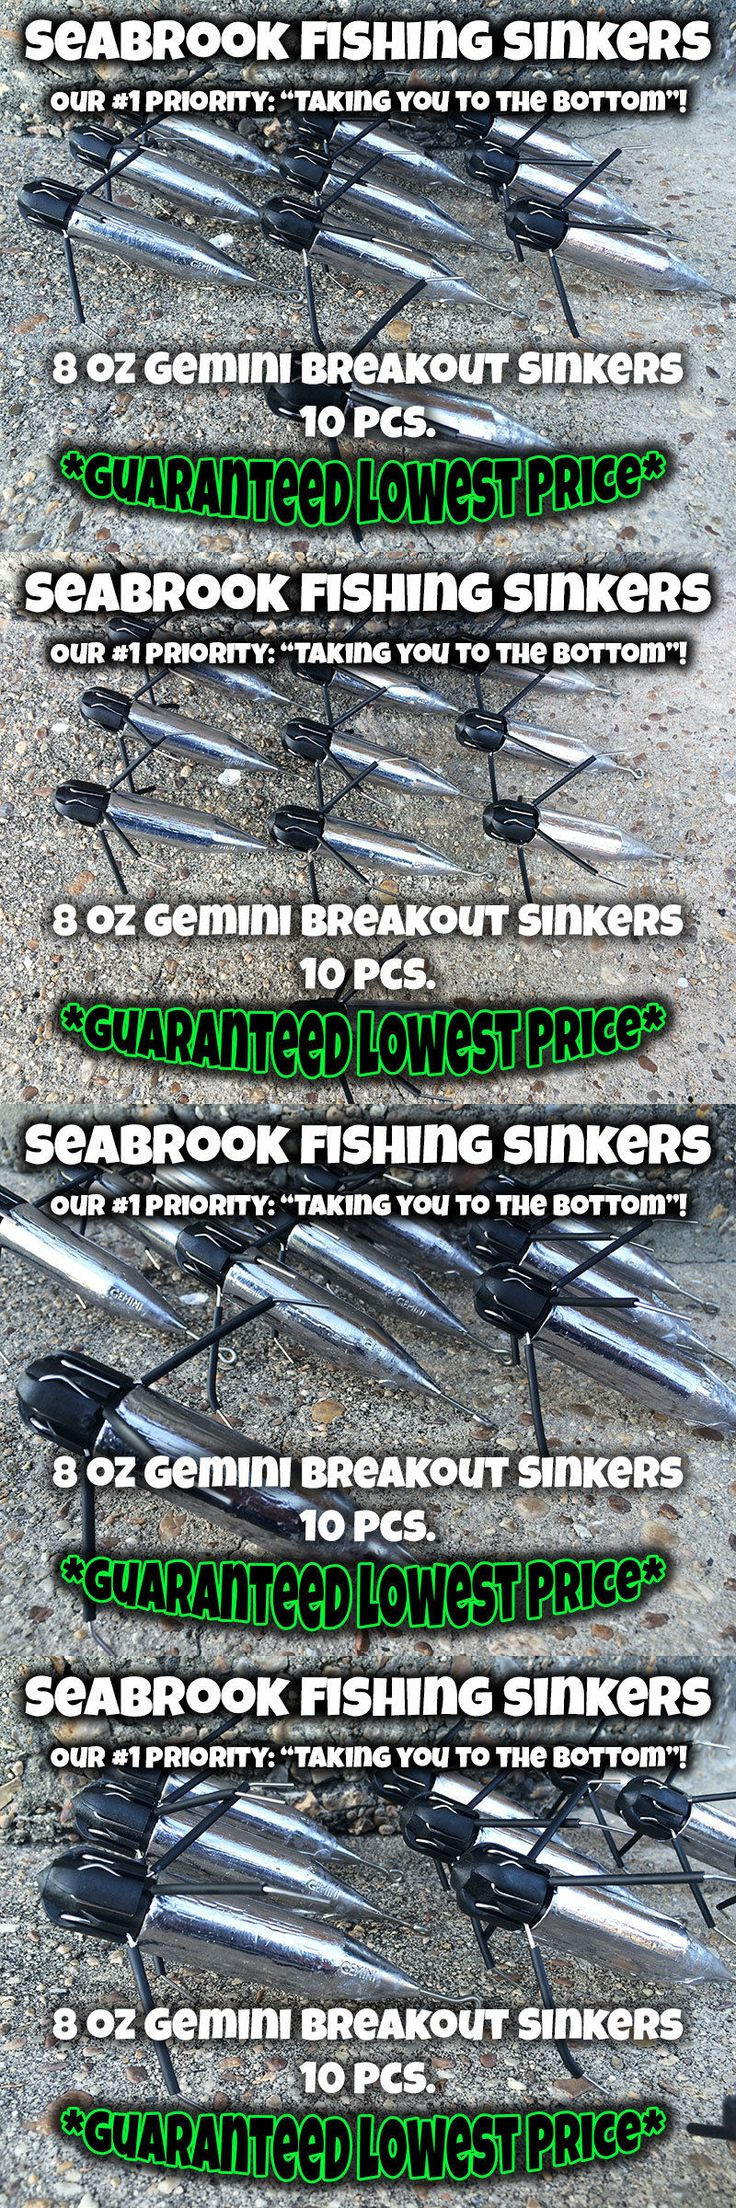 Sinkers and Weights 161826: 8 Oz - 10 Pcs   Gemini Breakout Sinkers   Surf Sputnik Sinker Spider Weights BUY IT NOW ONLY: $35.99